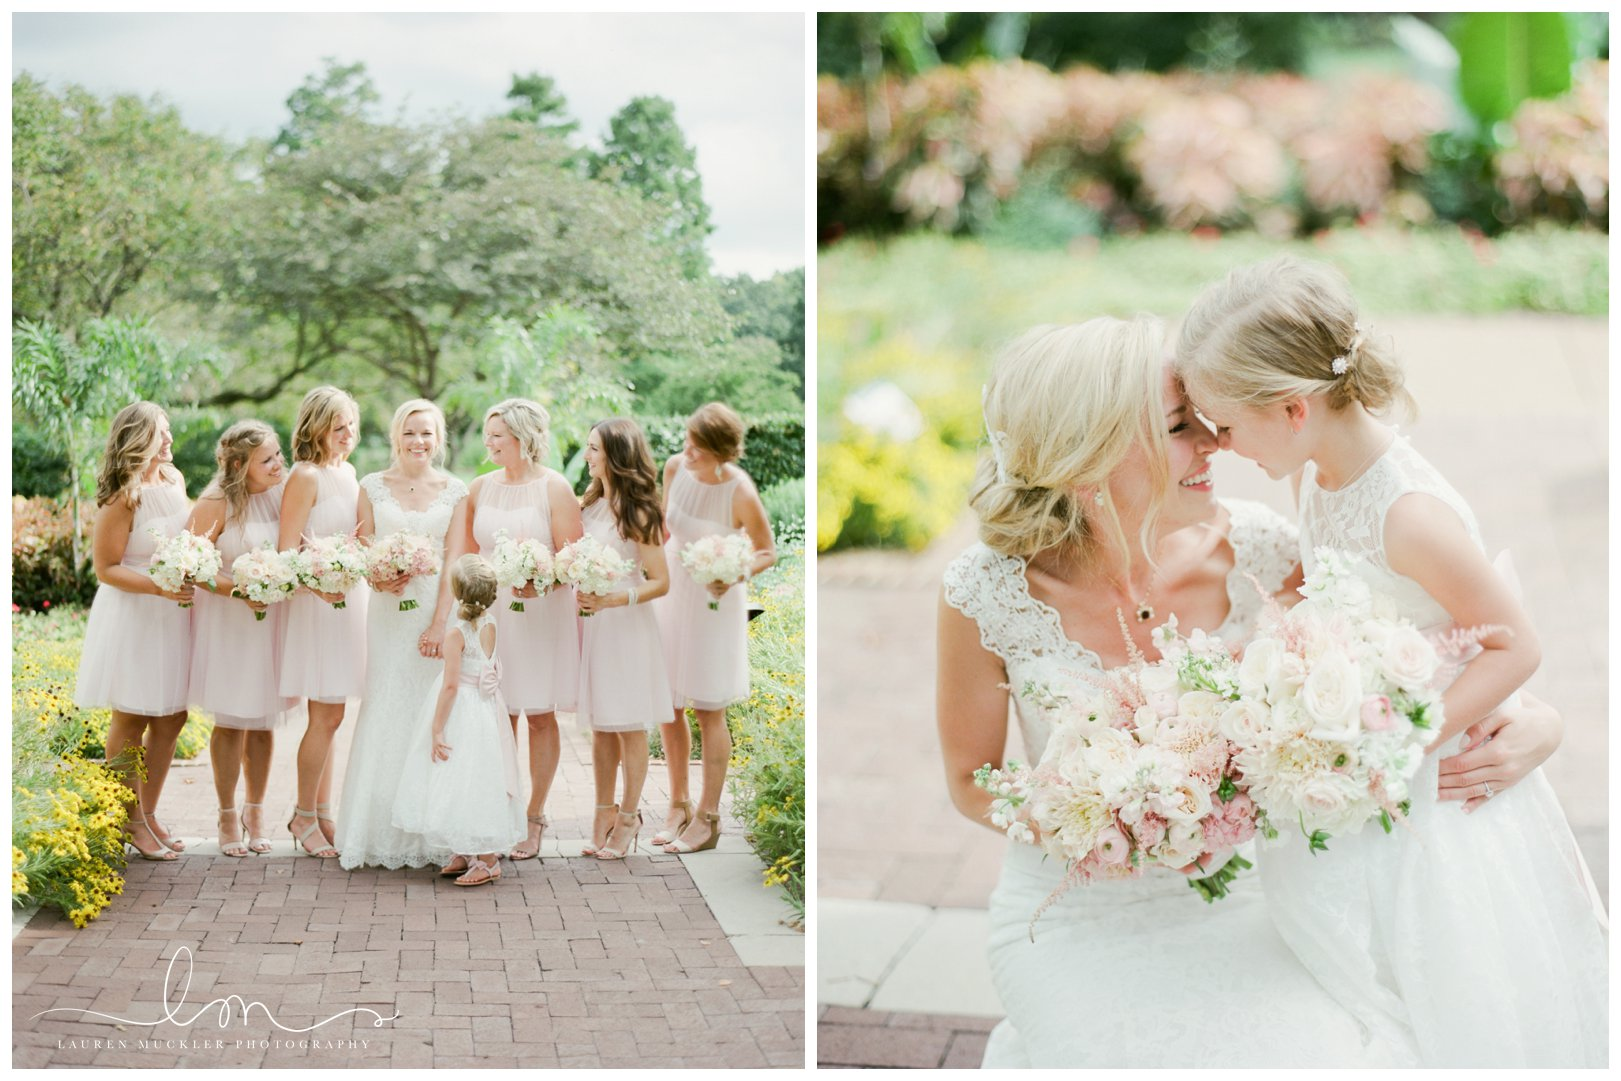 lauren muckler photography_fine art film wedding photography_st louis_photography_0652.jpg